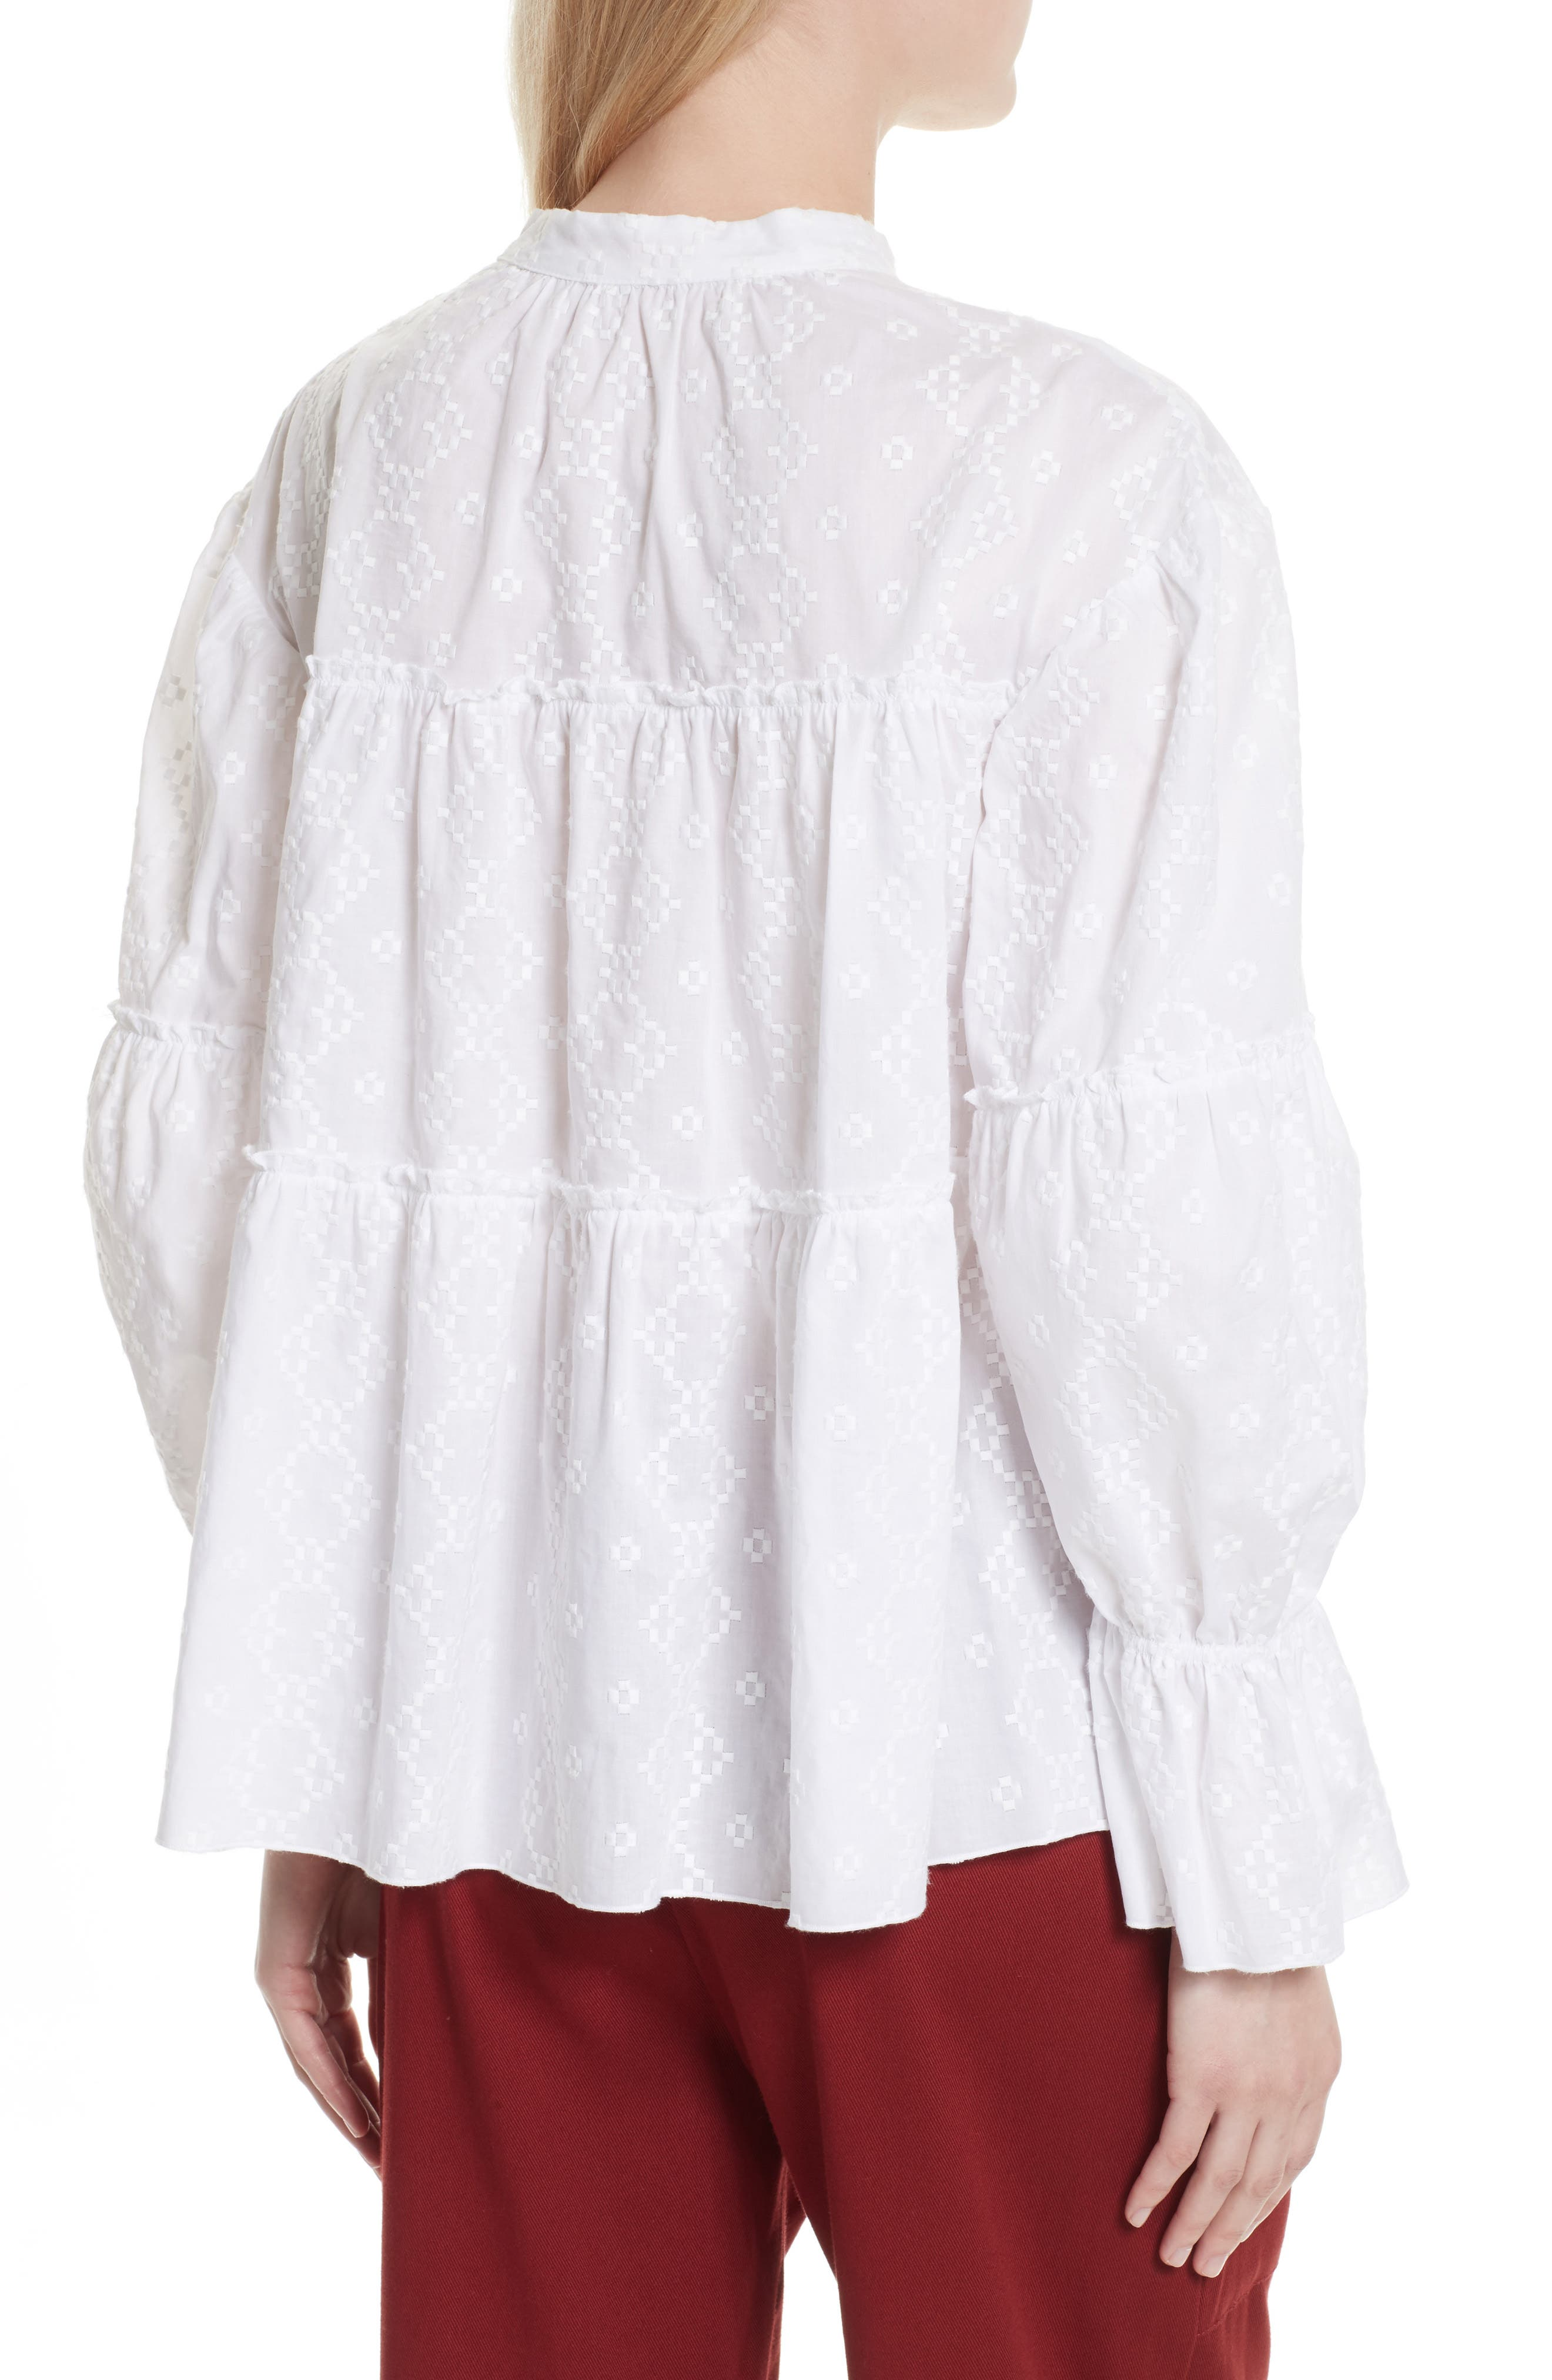 Embroidered Eyelet Blouse,                             Alternate thumbnail 2, color,                             101